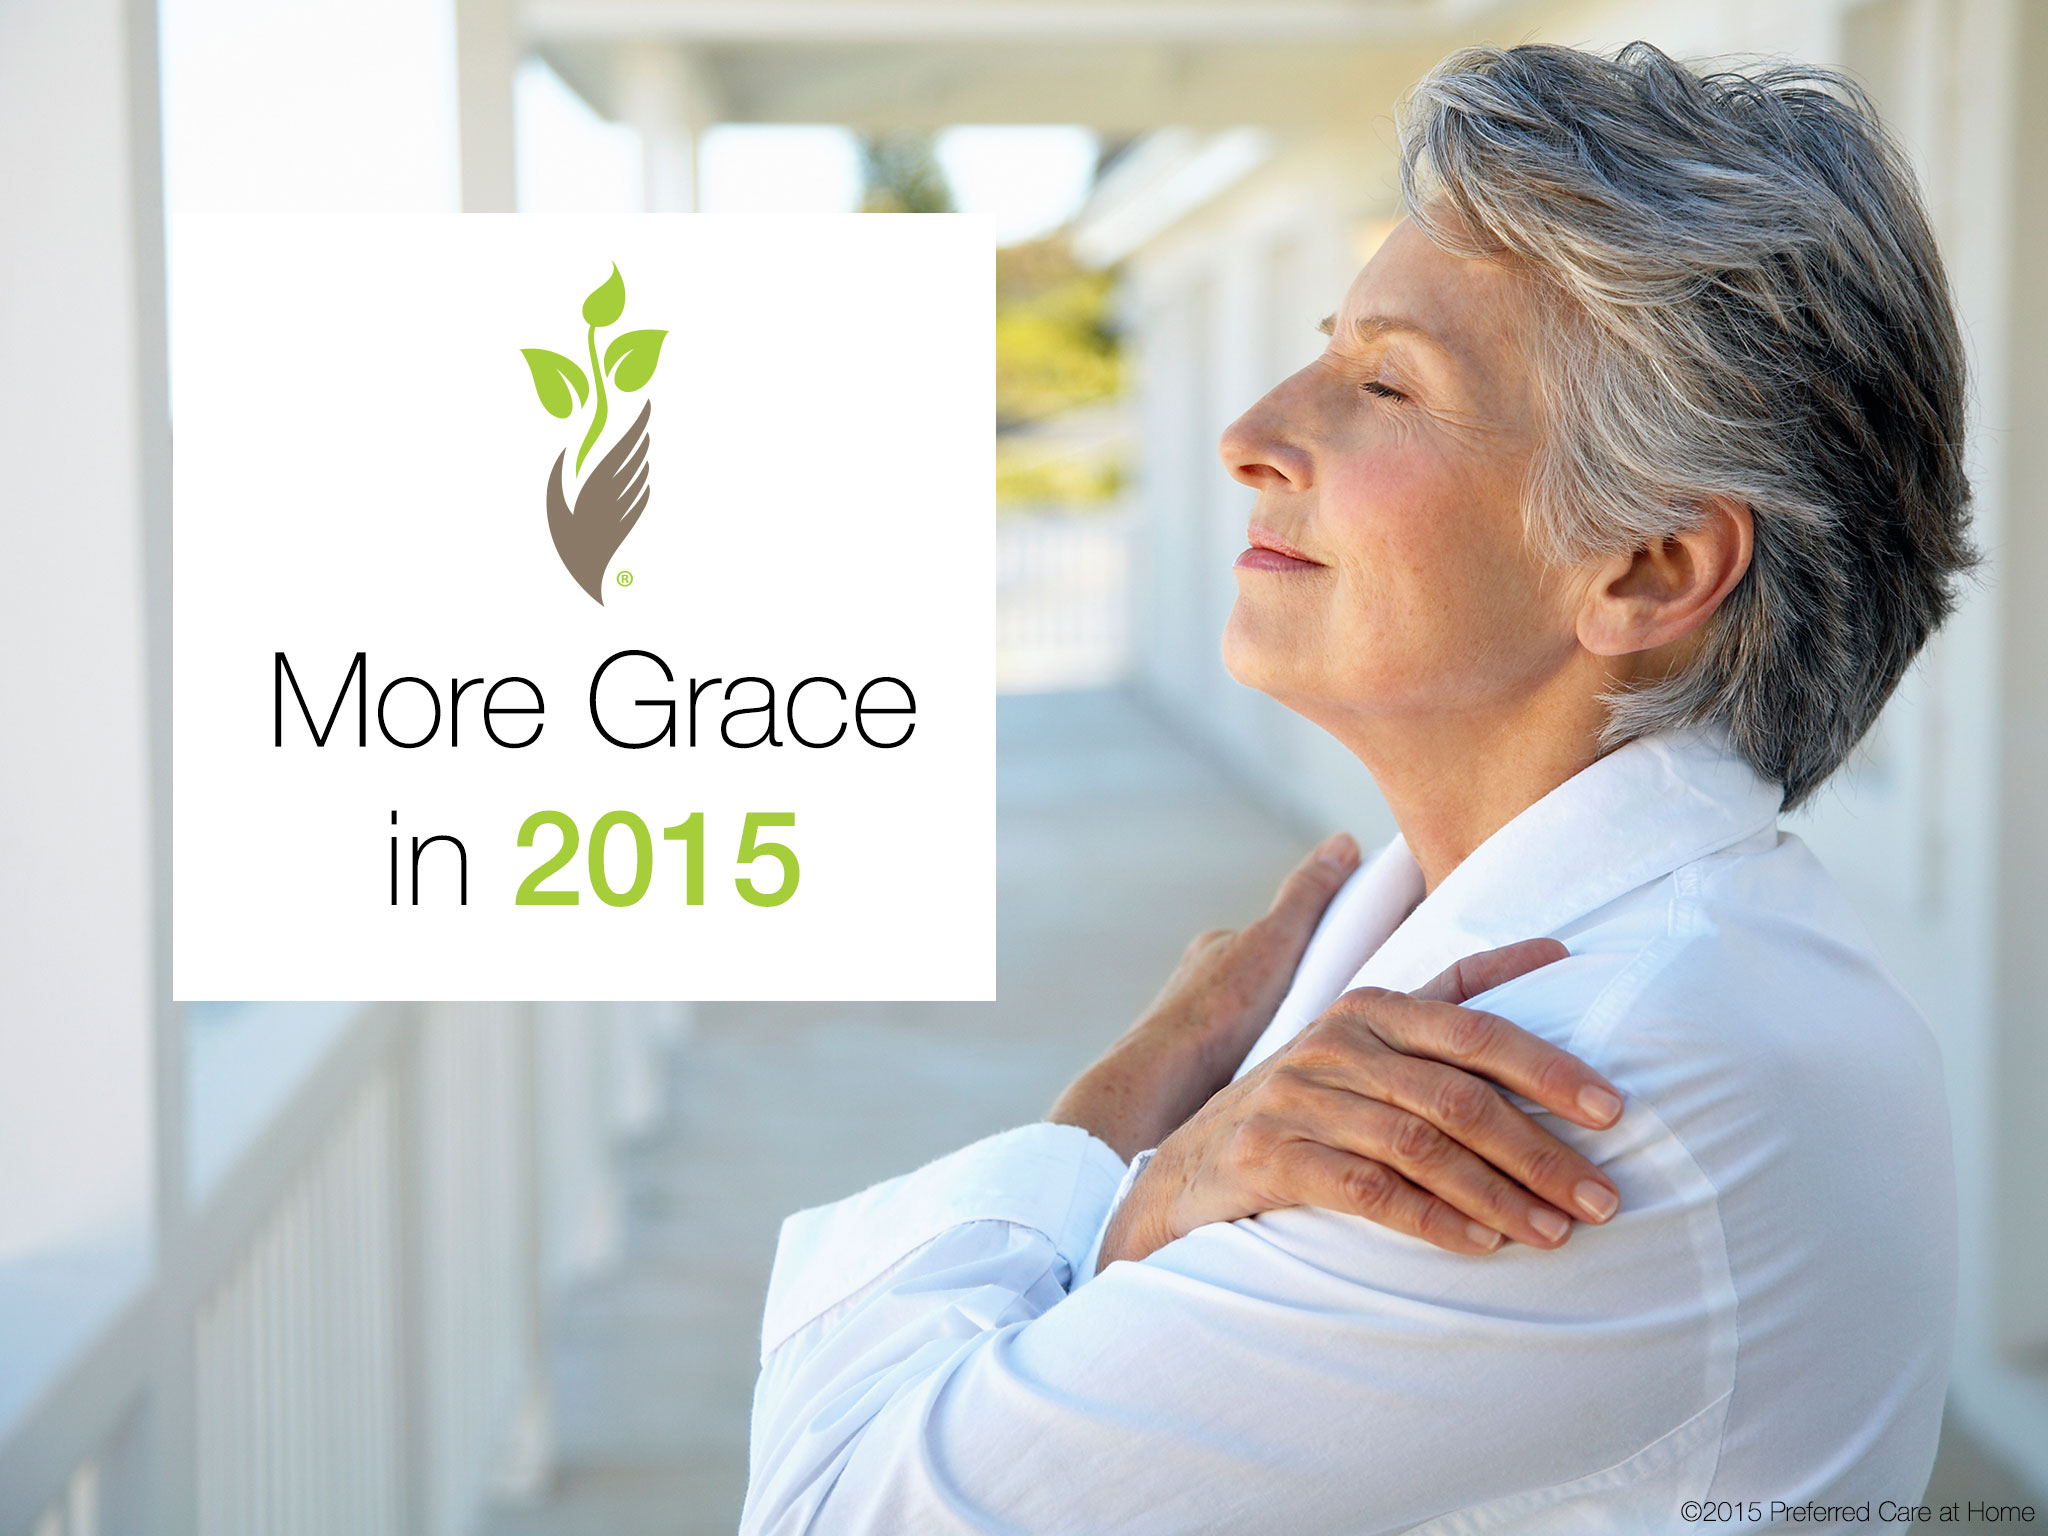 More Grace in 2015